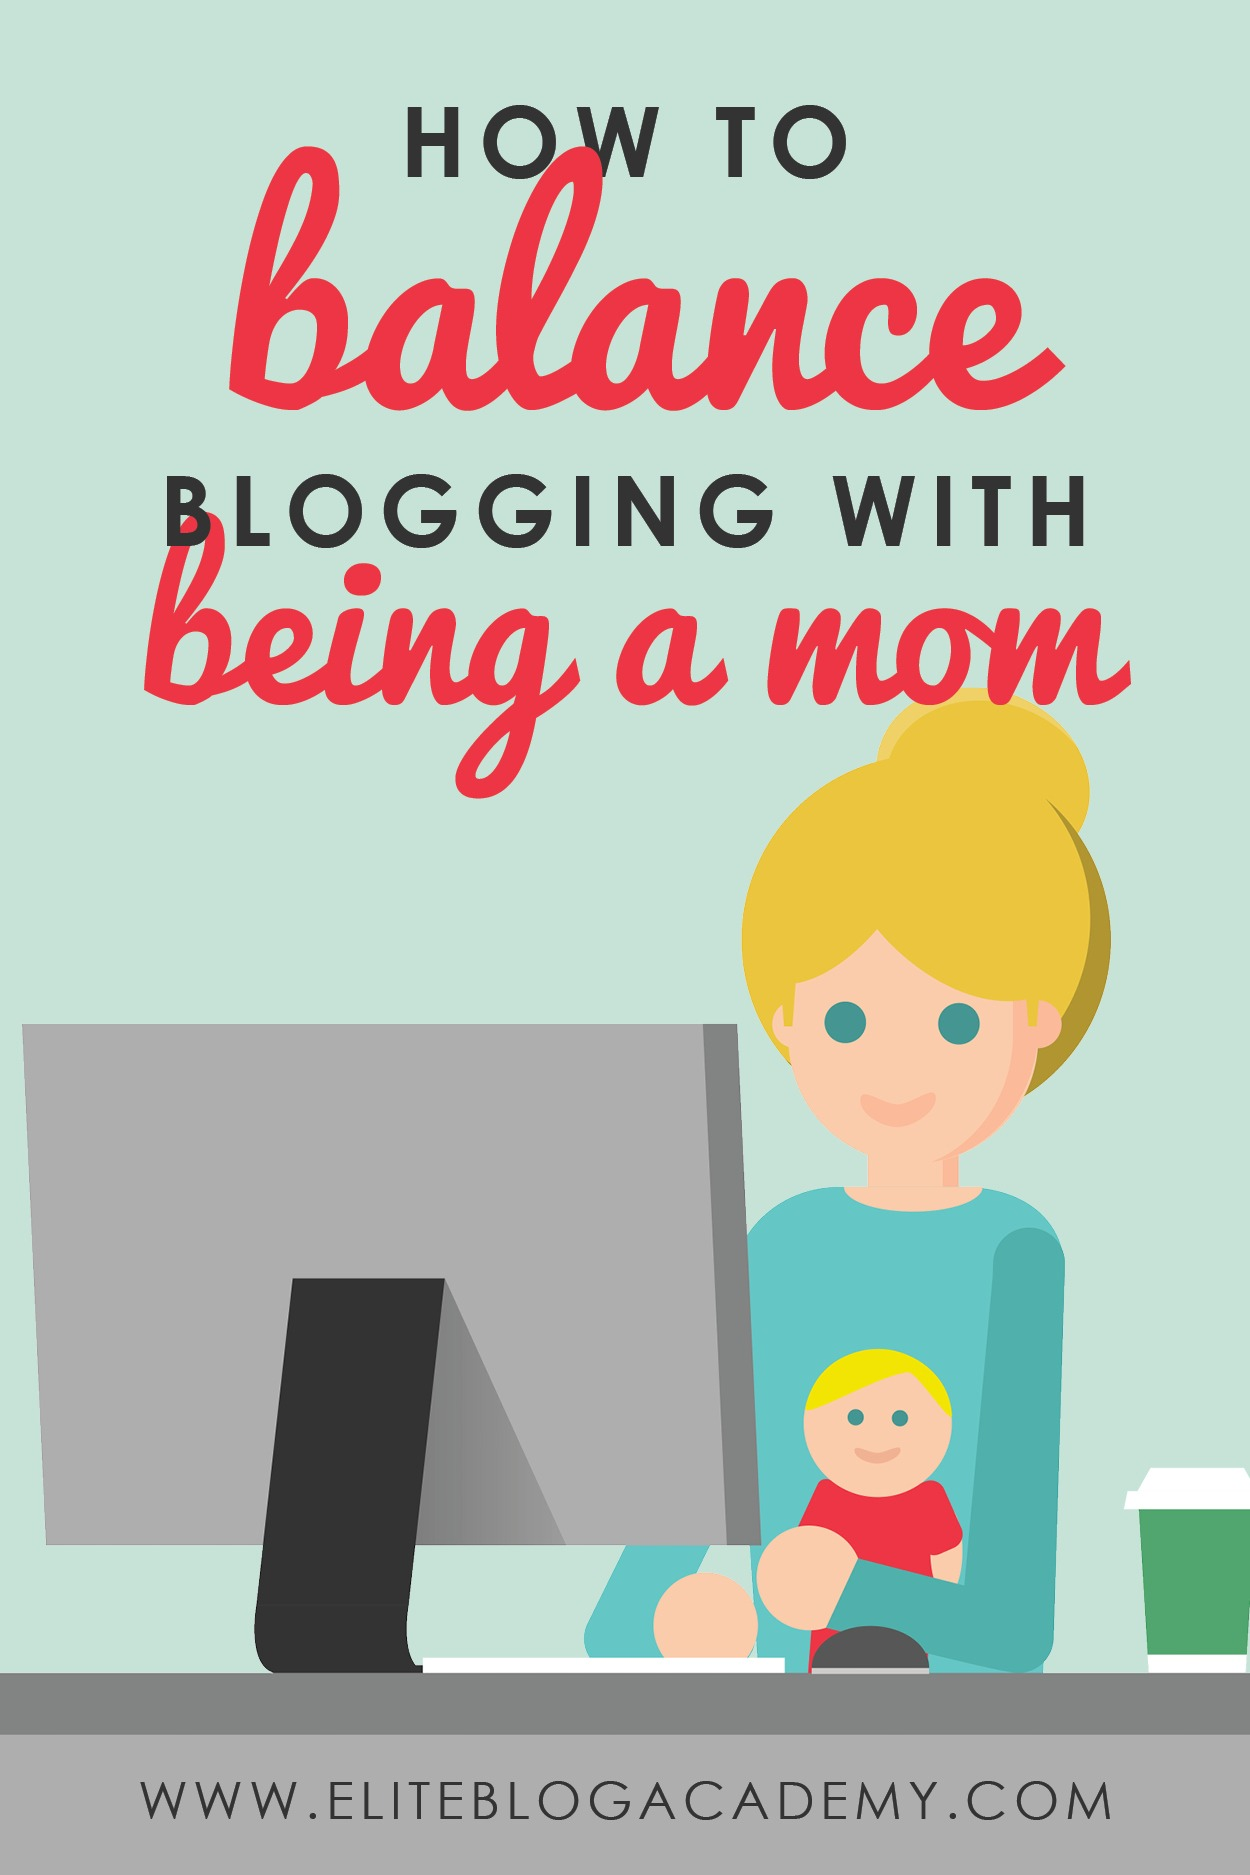 EBA_How to Balance Blogging with Being a Mom_Vertical